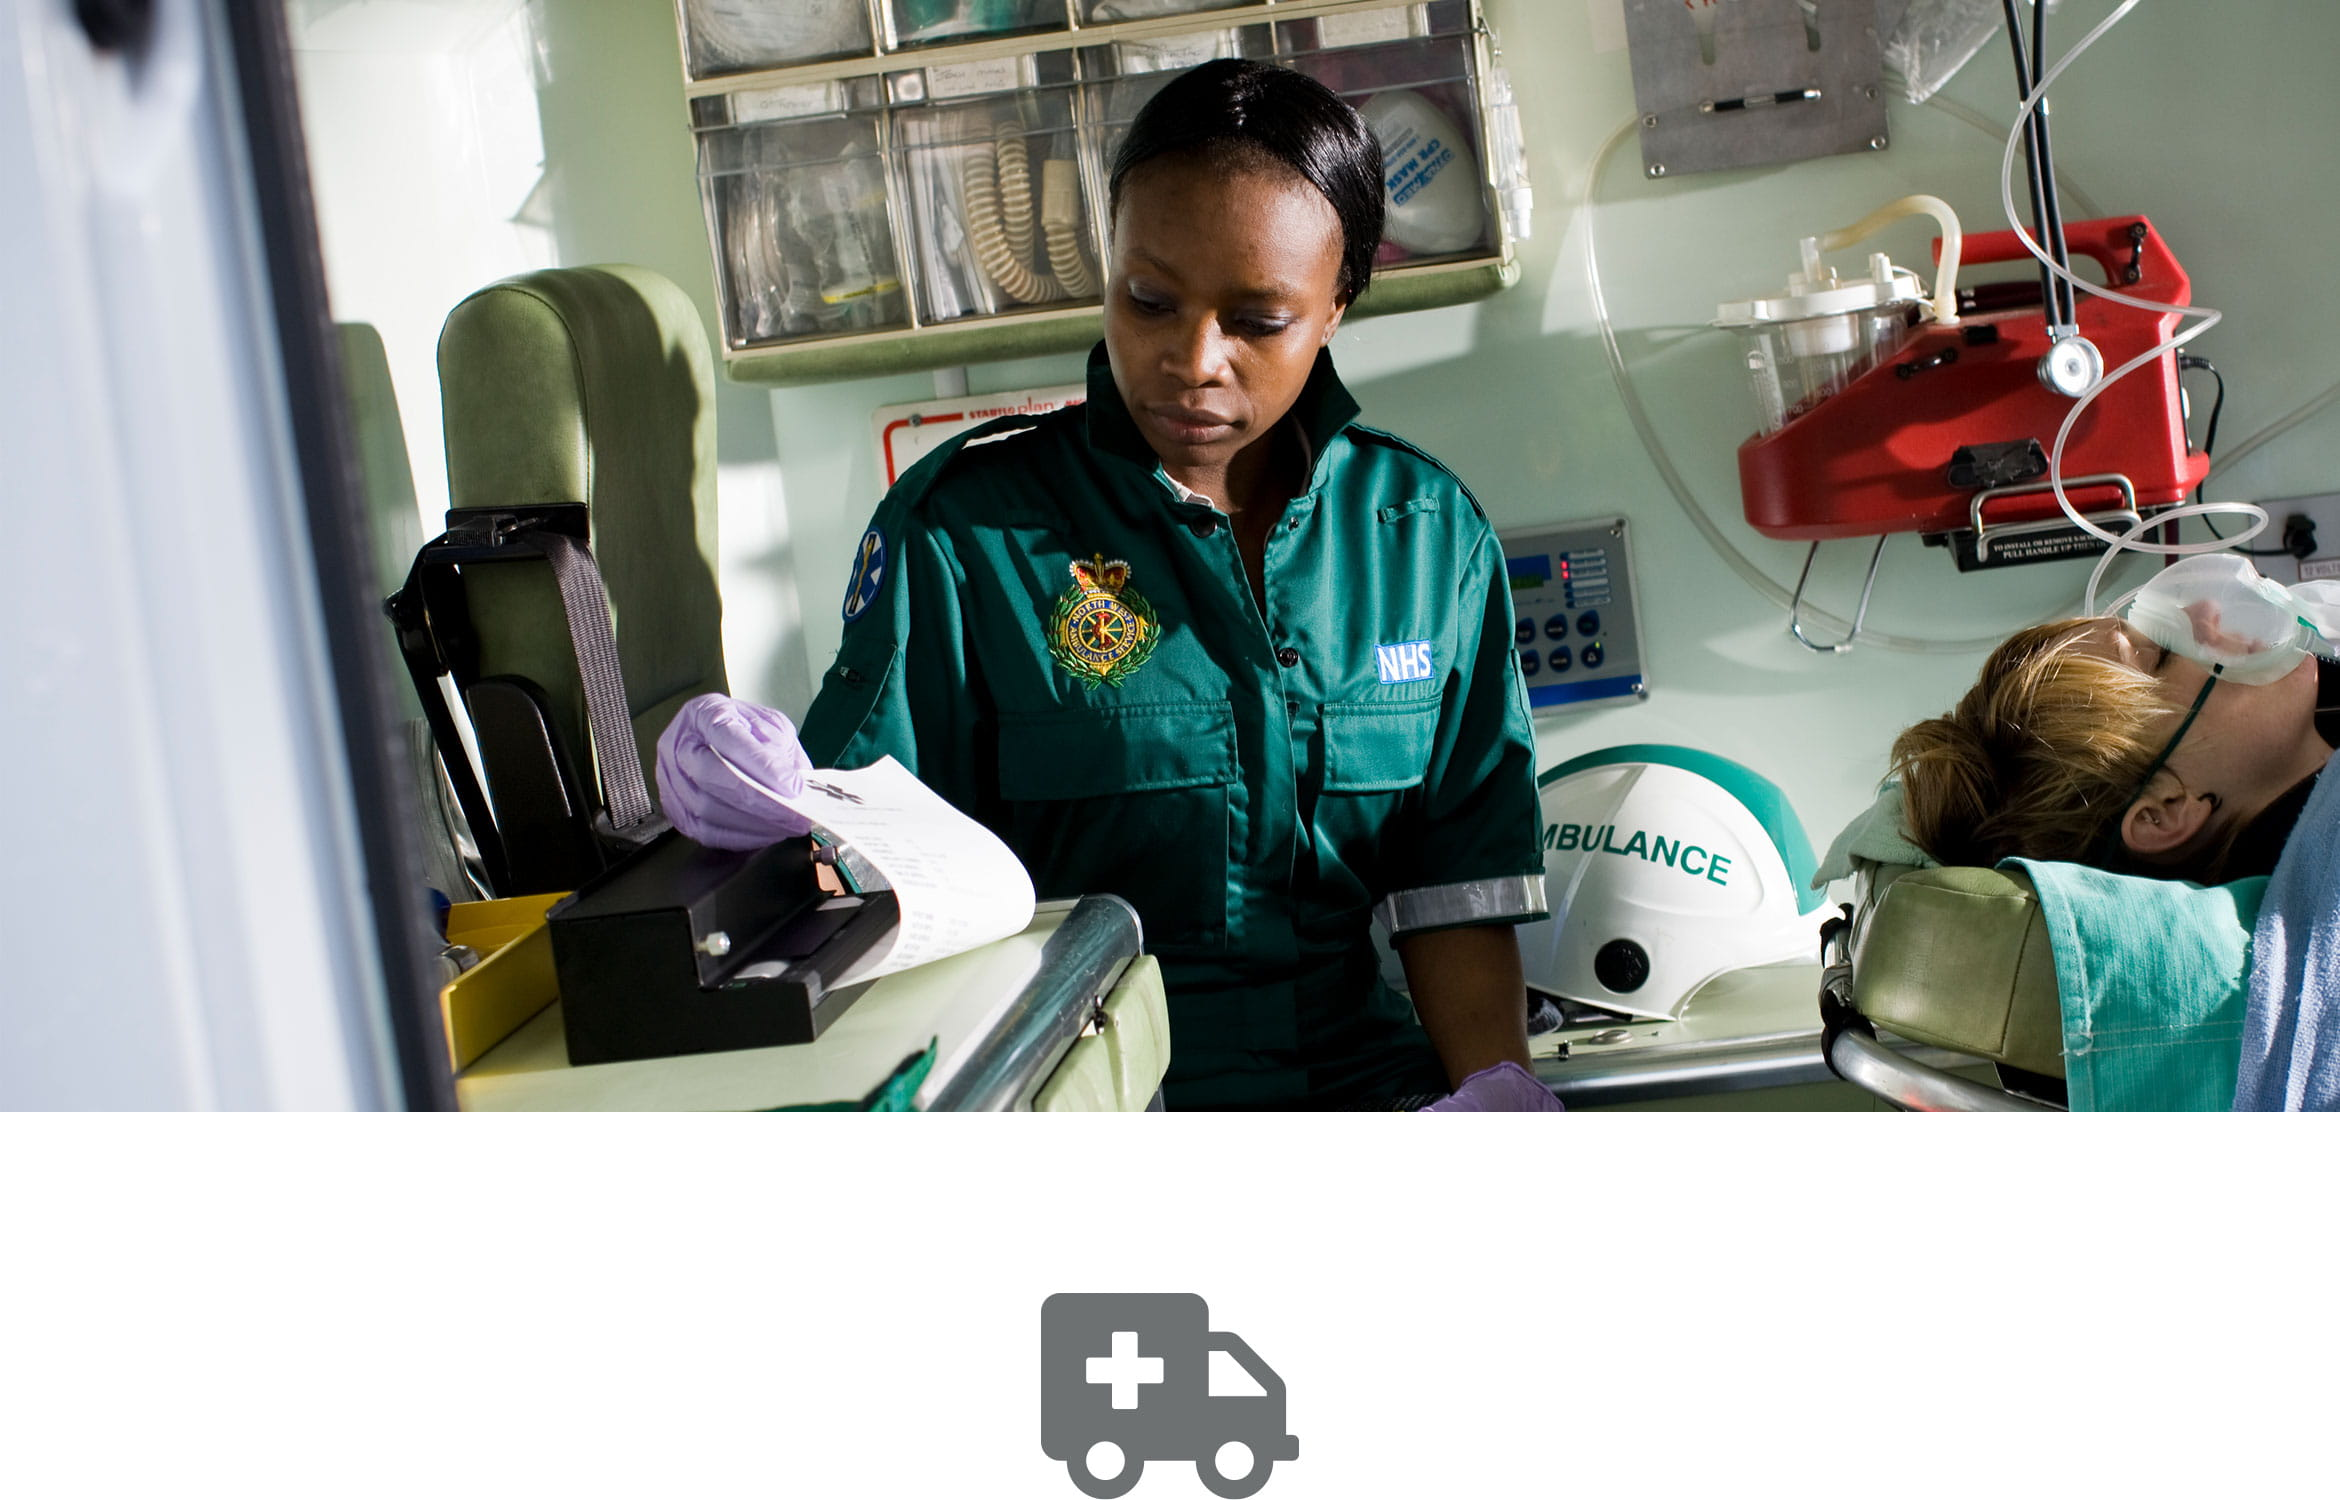 Patient record being printed on a PJ Brother portable printer by an paramedic in ambulance